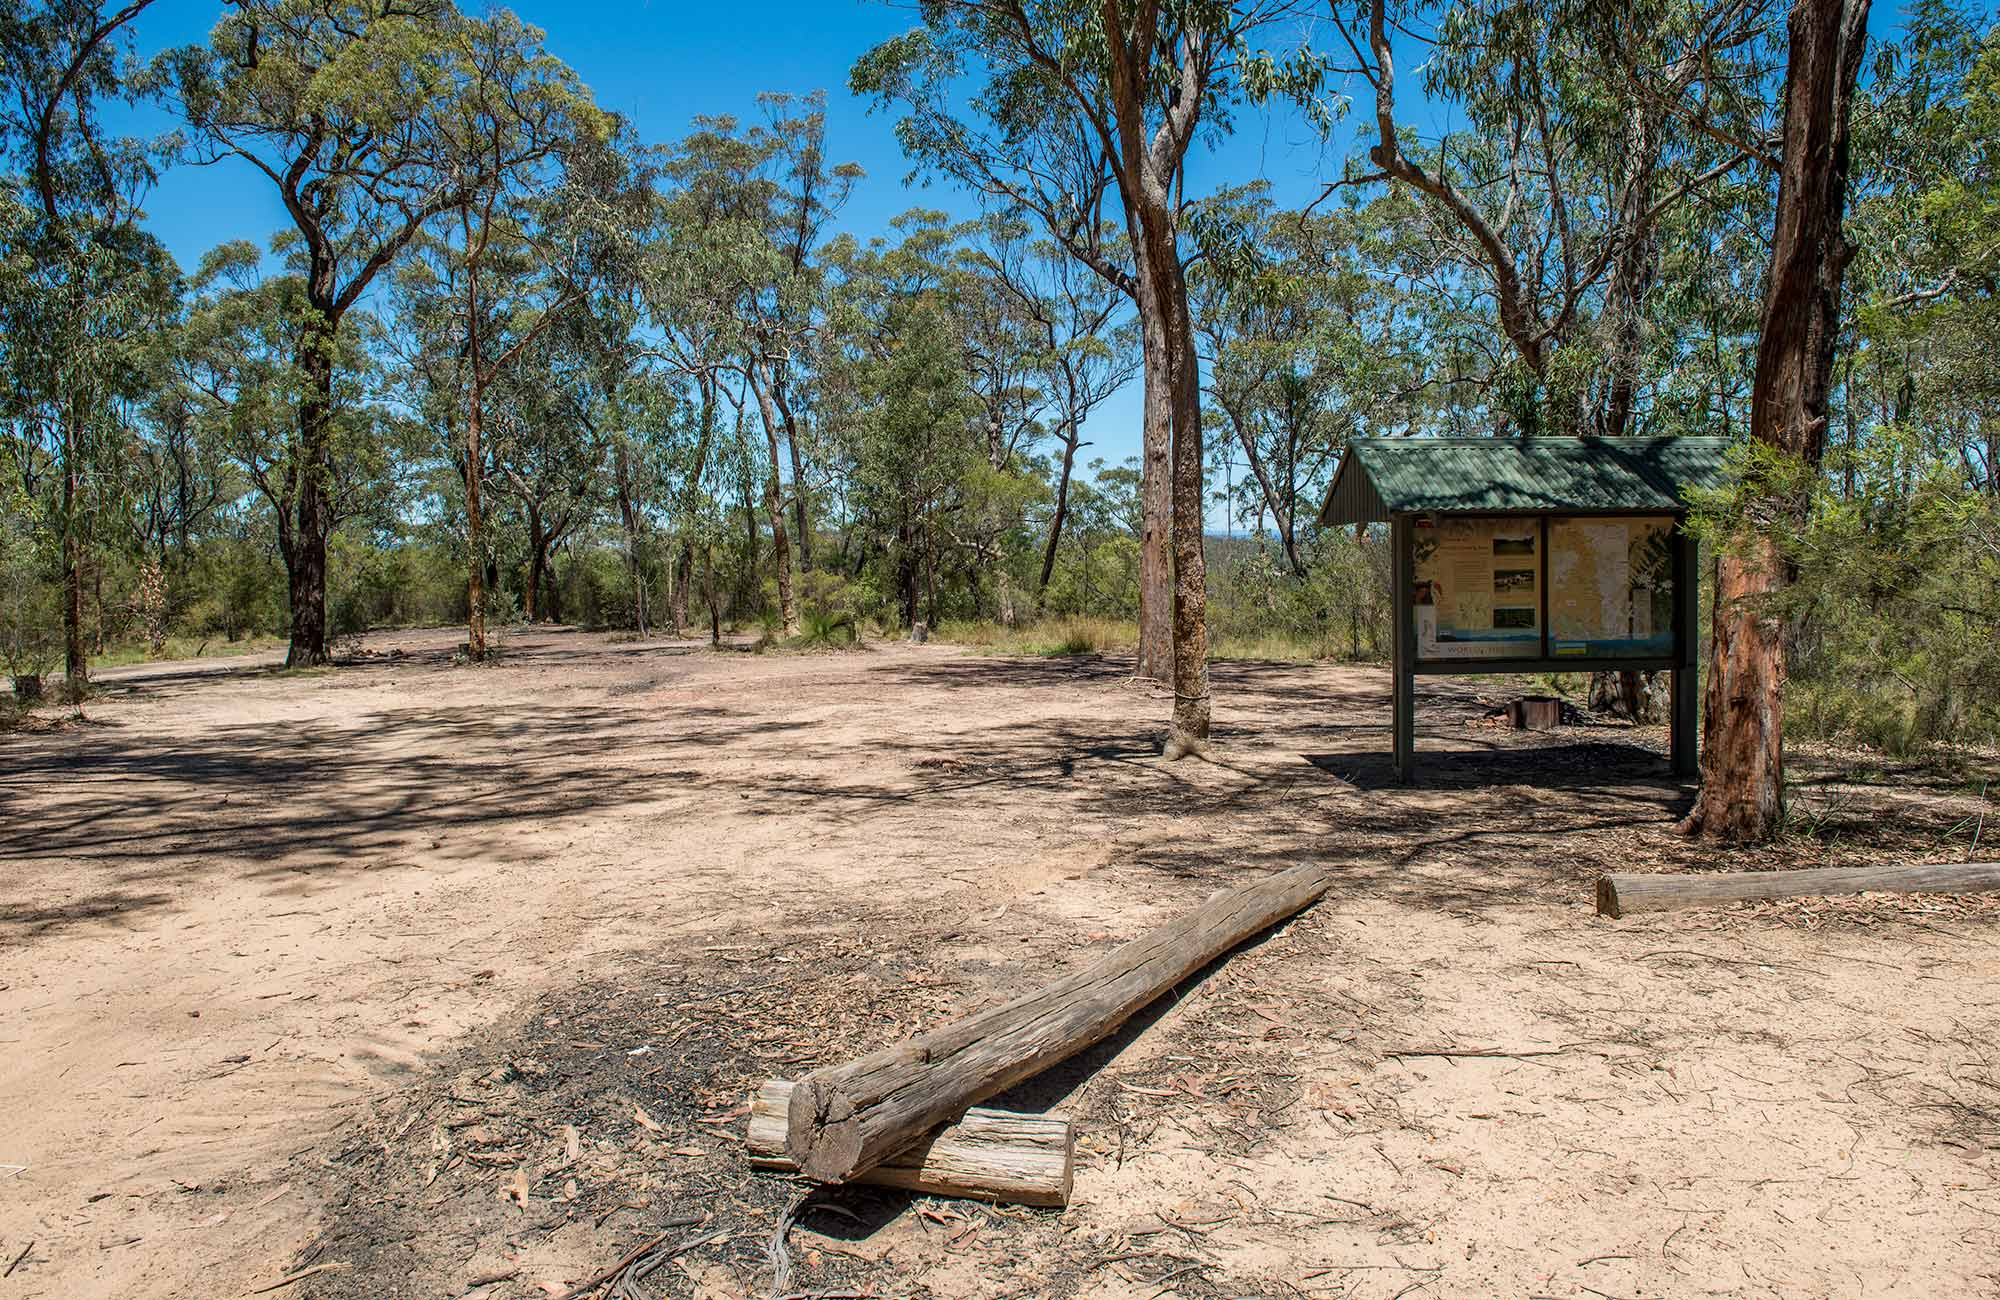 Finchley campground, Yengo National Park. Photo: John Spencer